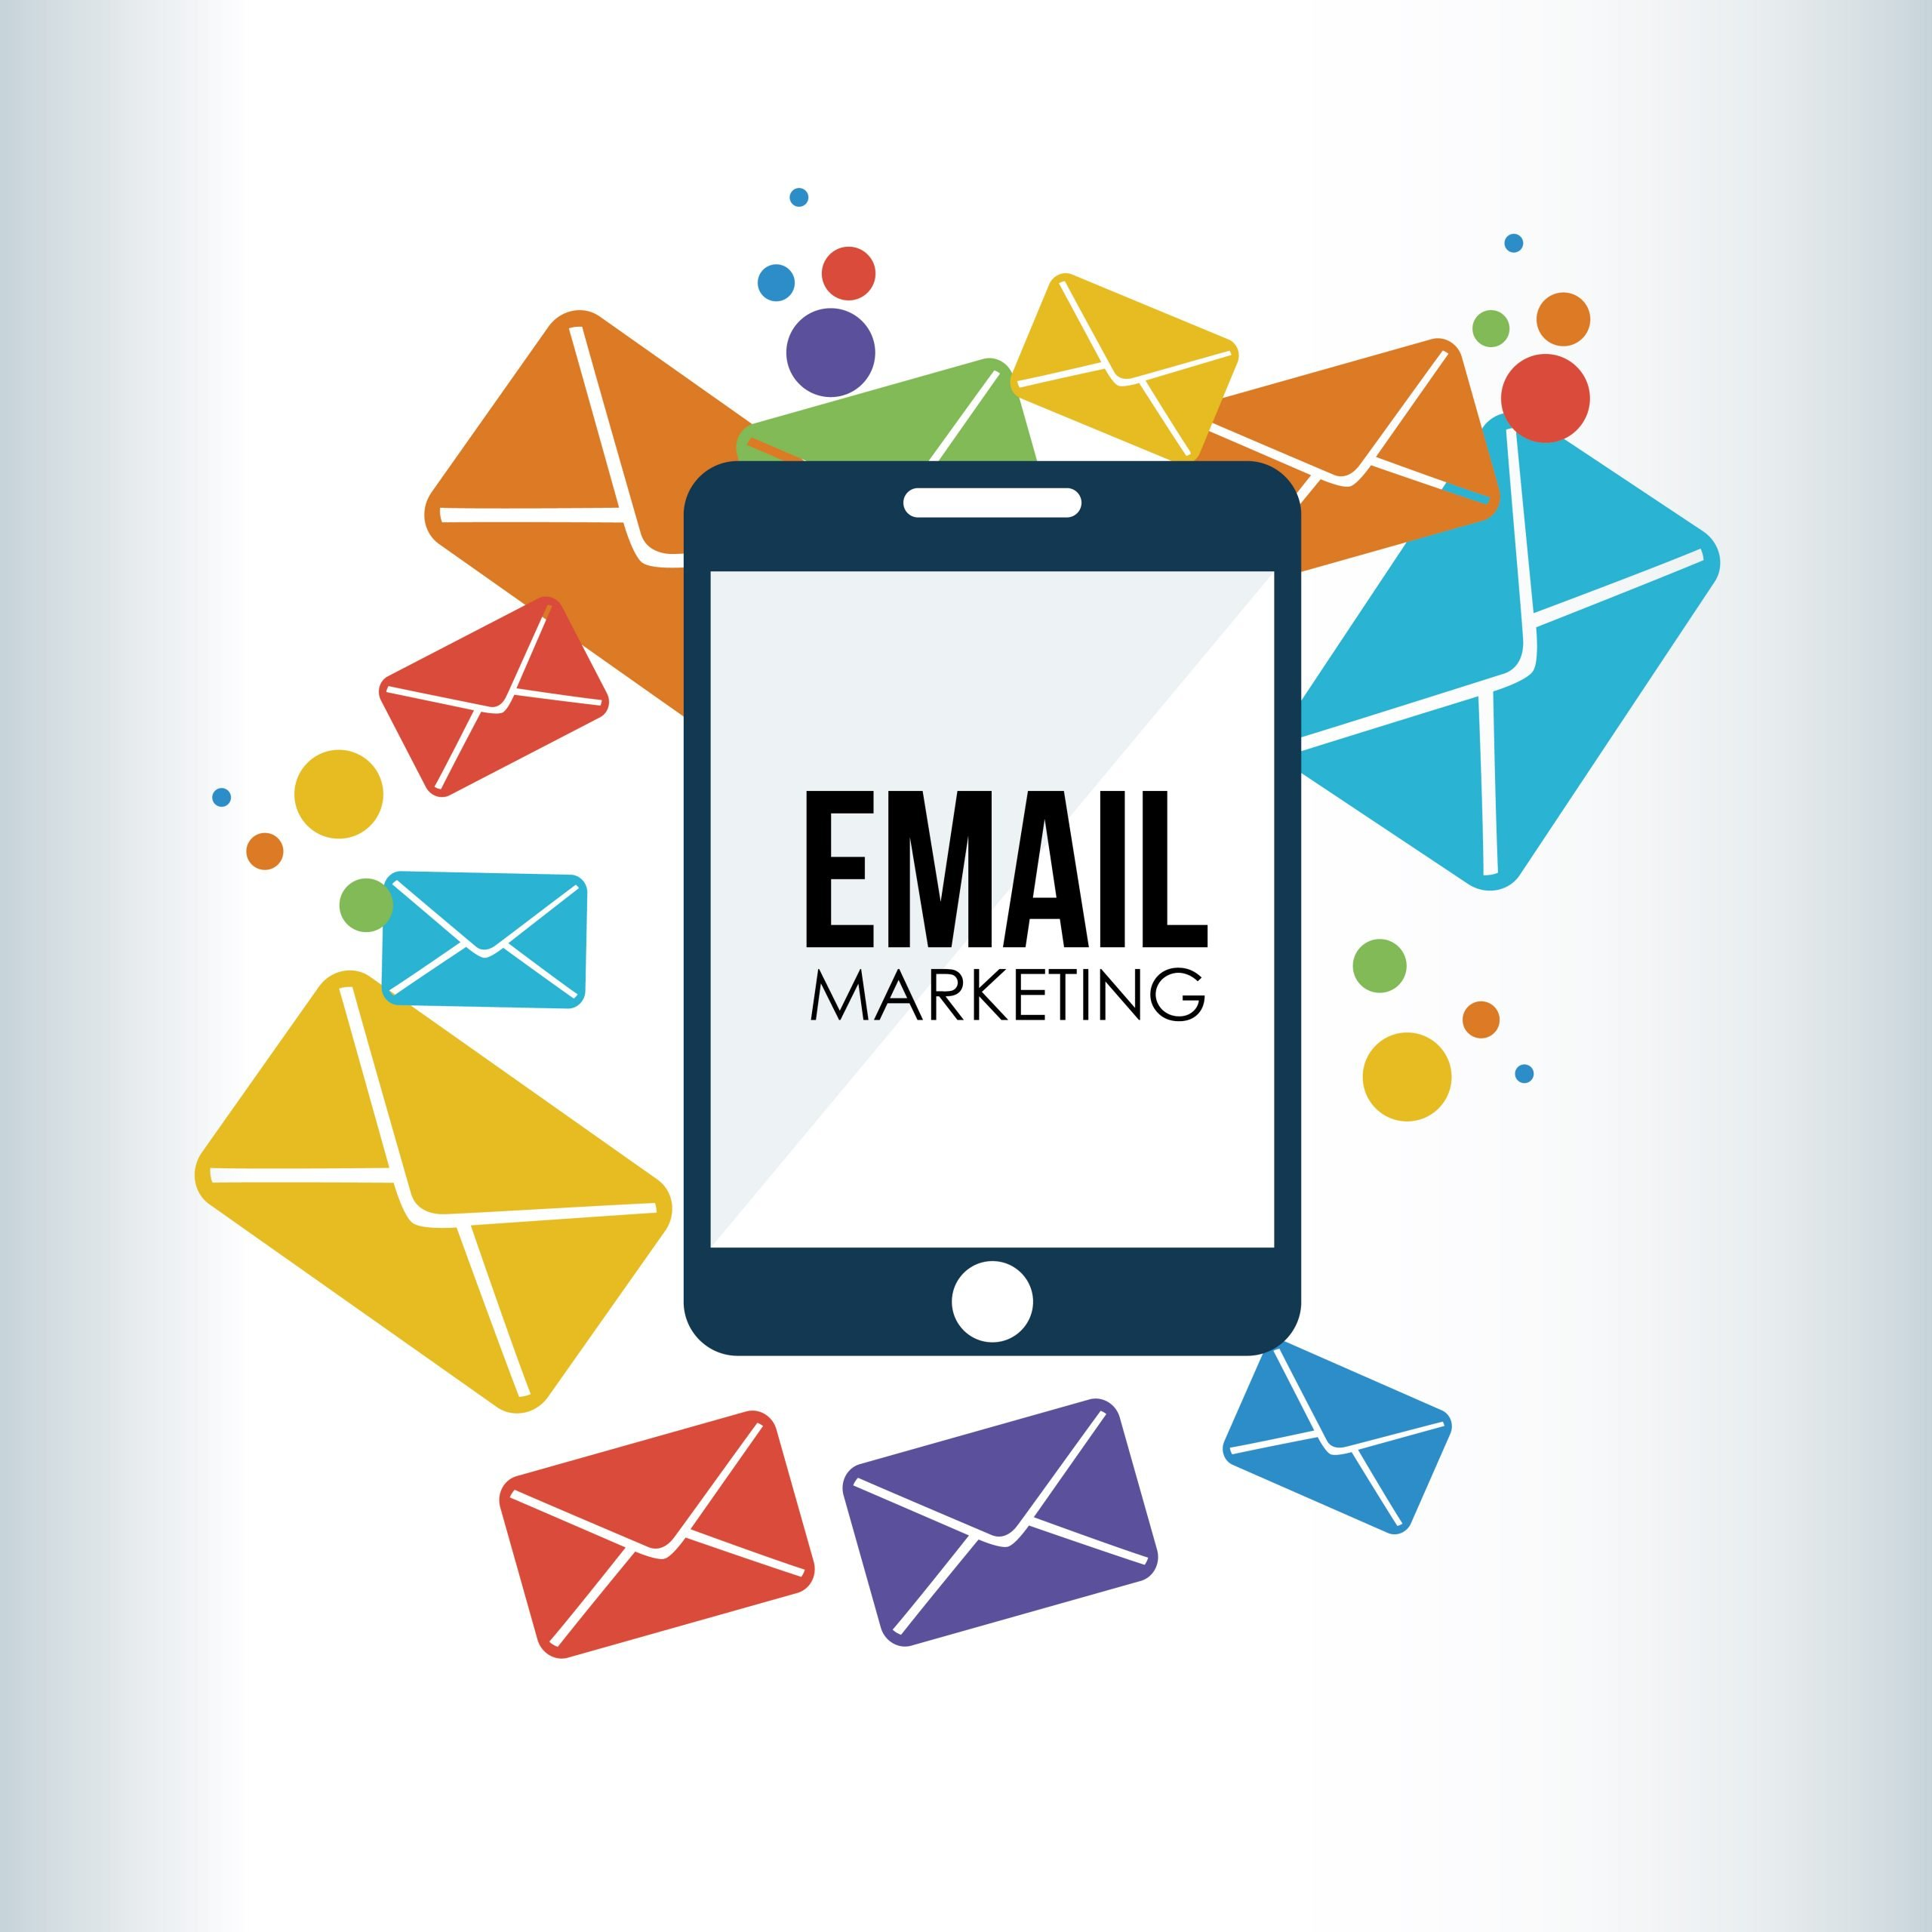 8 Factors That Lead To Email Marketing Success